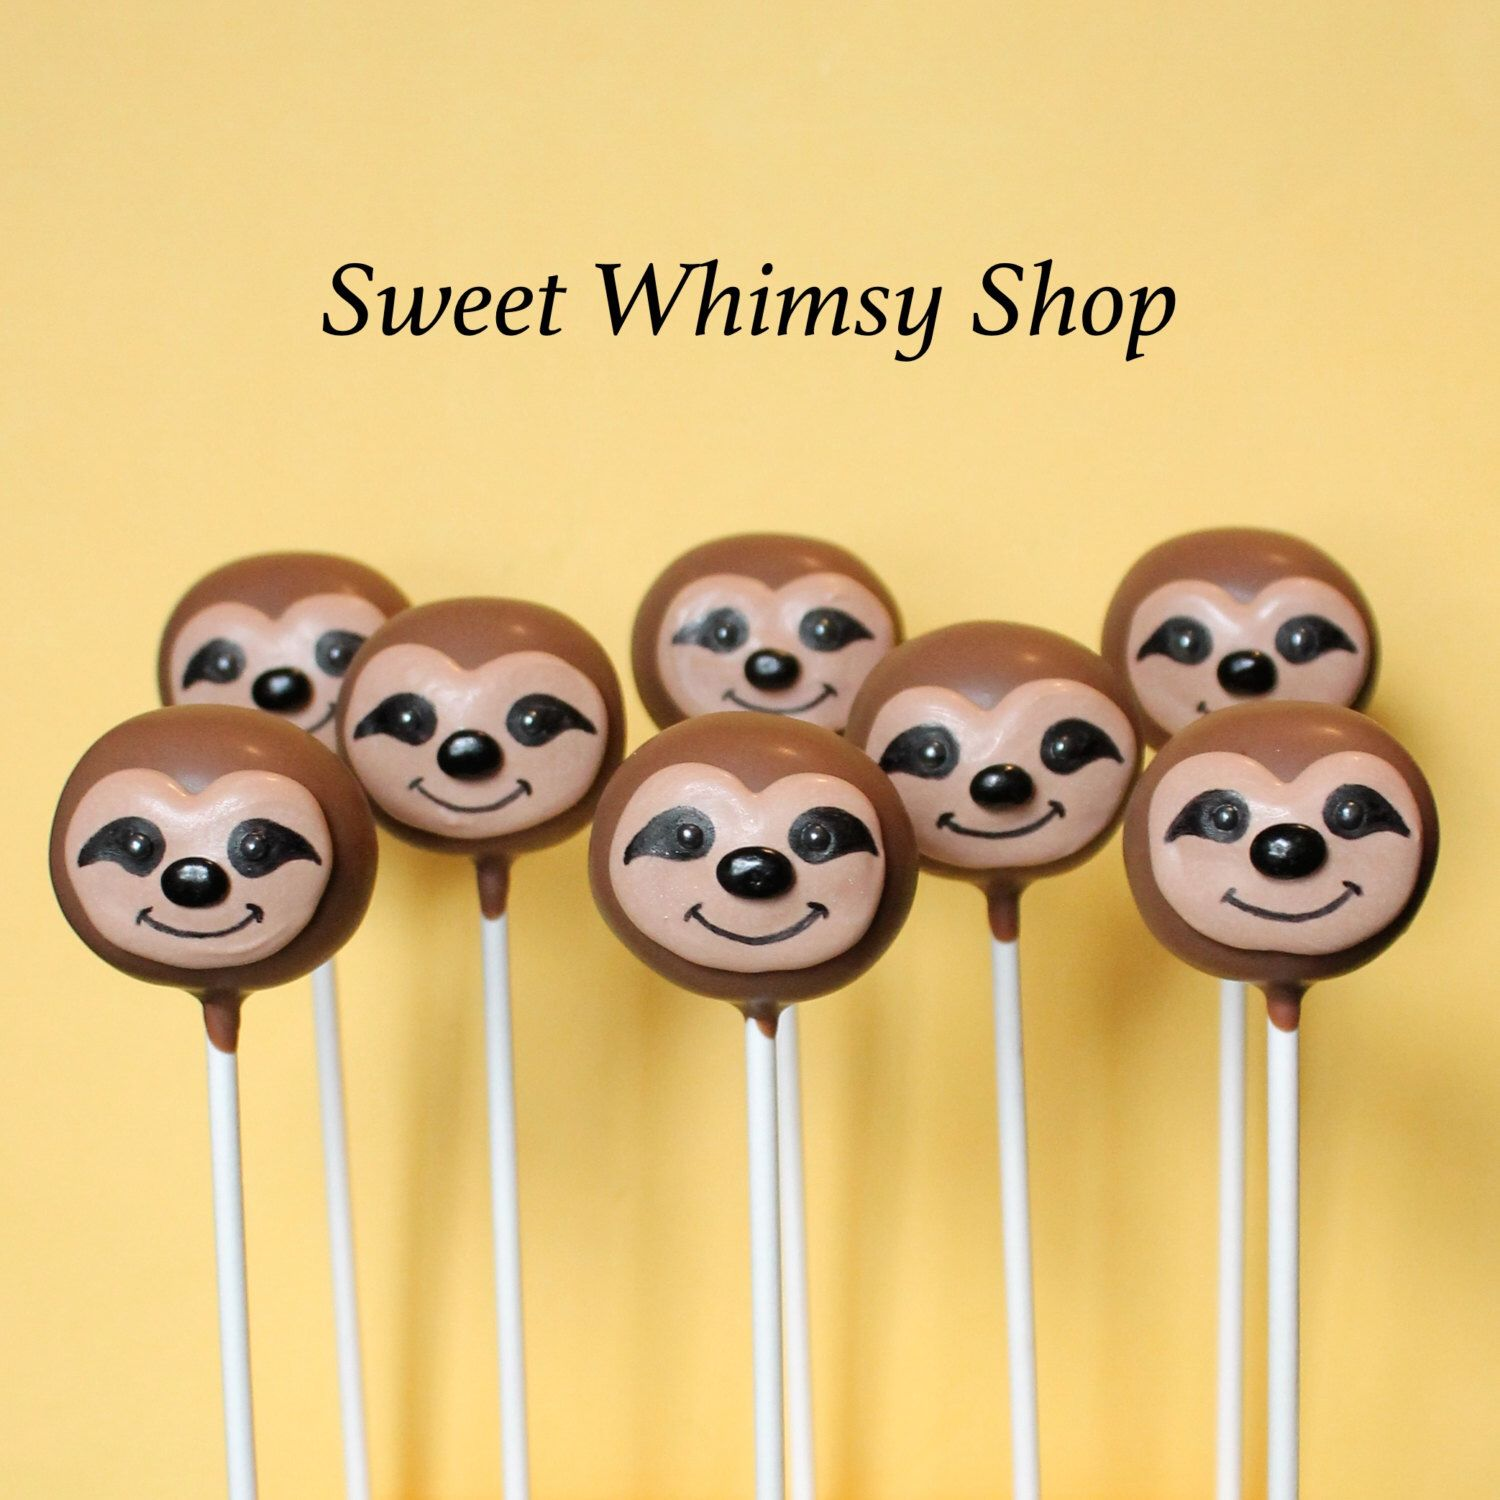 12 Cute Sloth Cake Pops for Zootopia party jungle zoo birthday